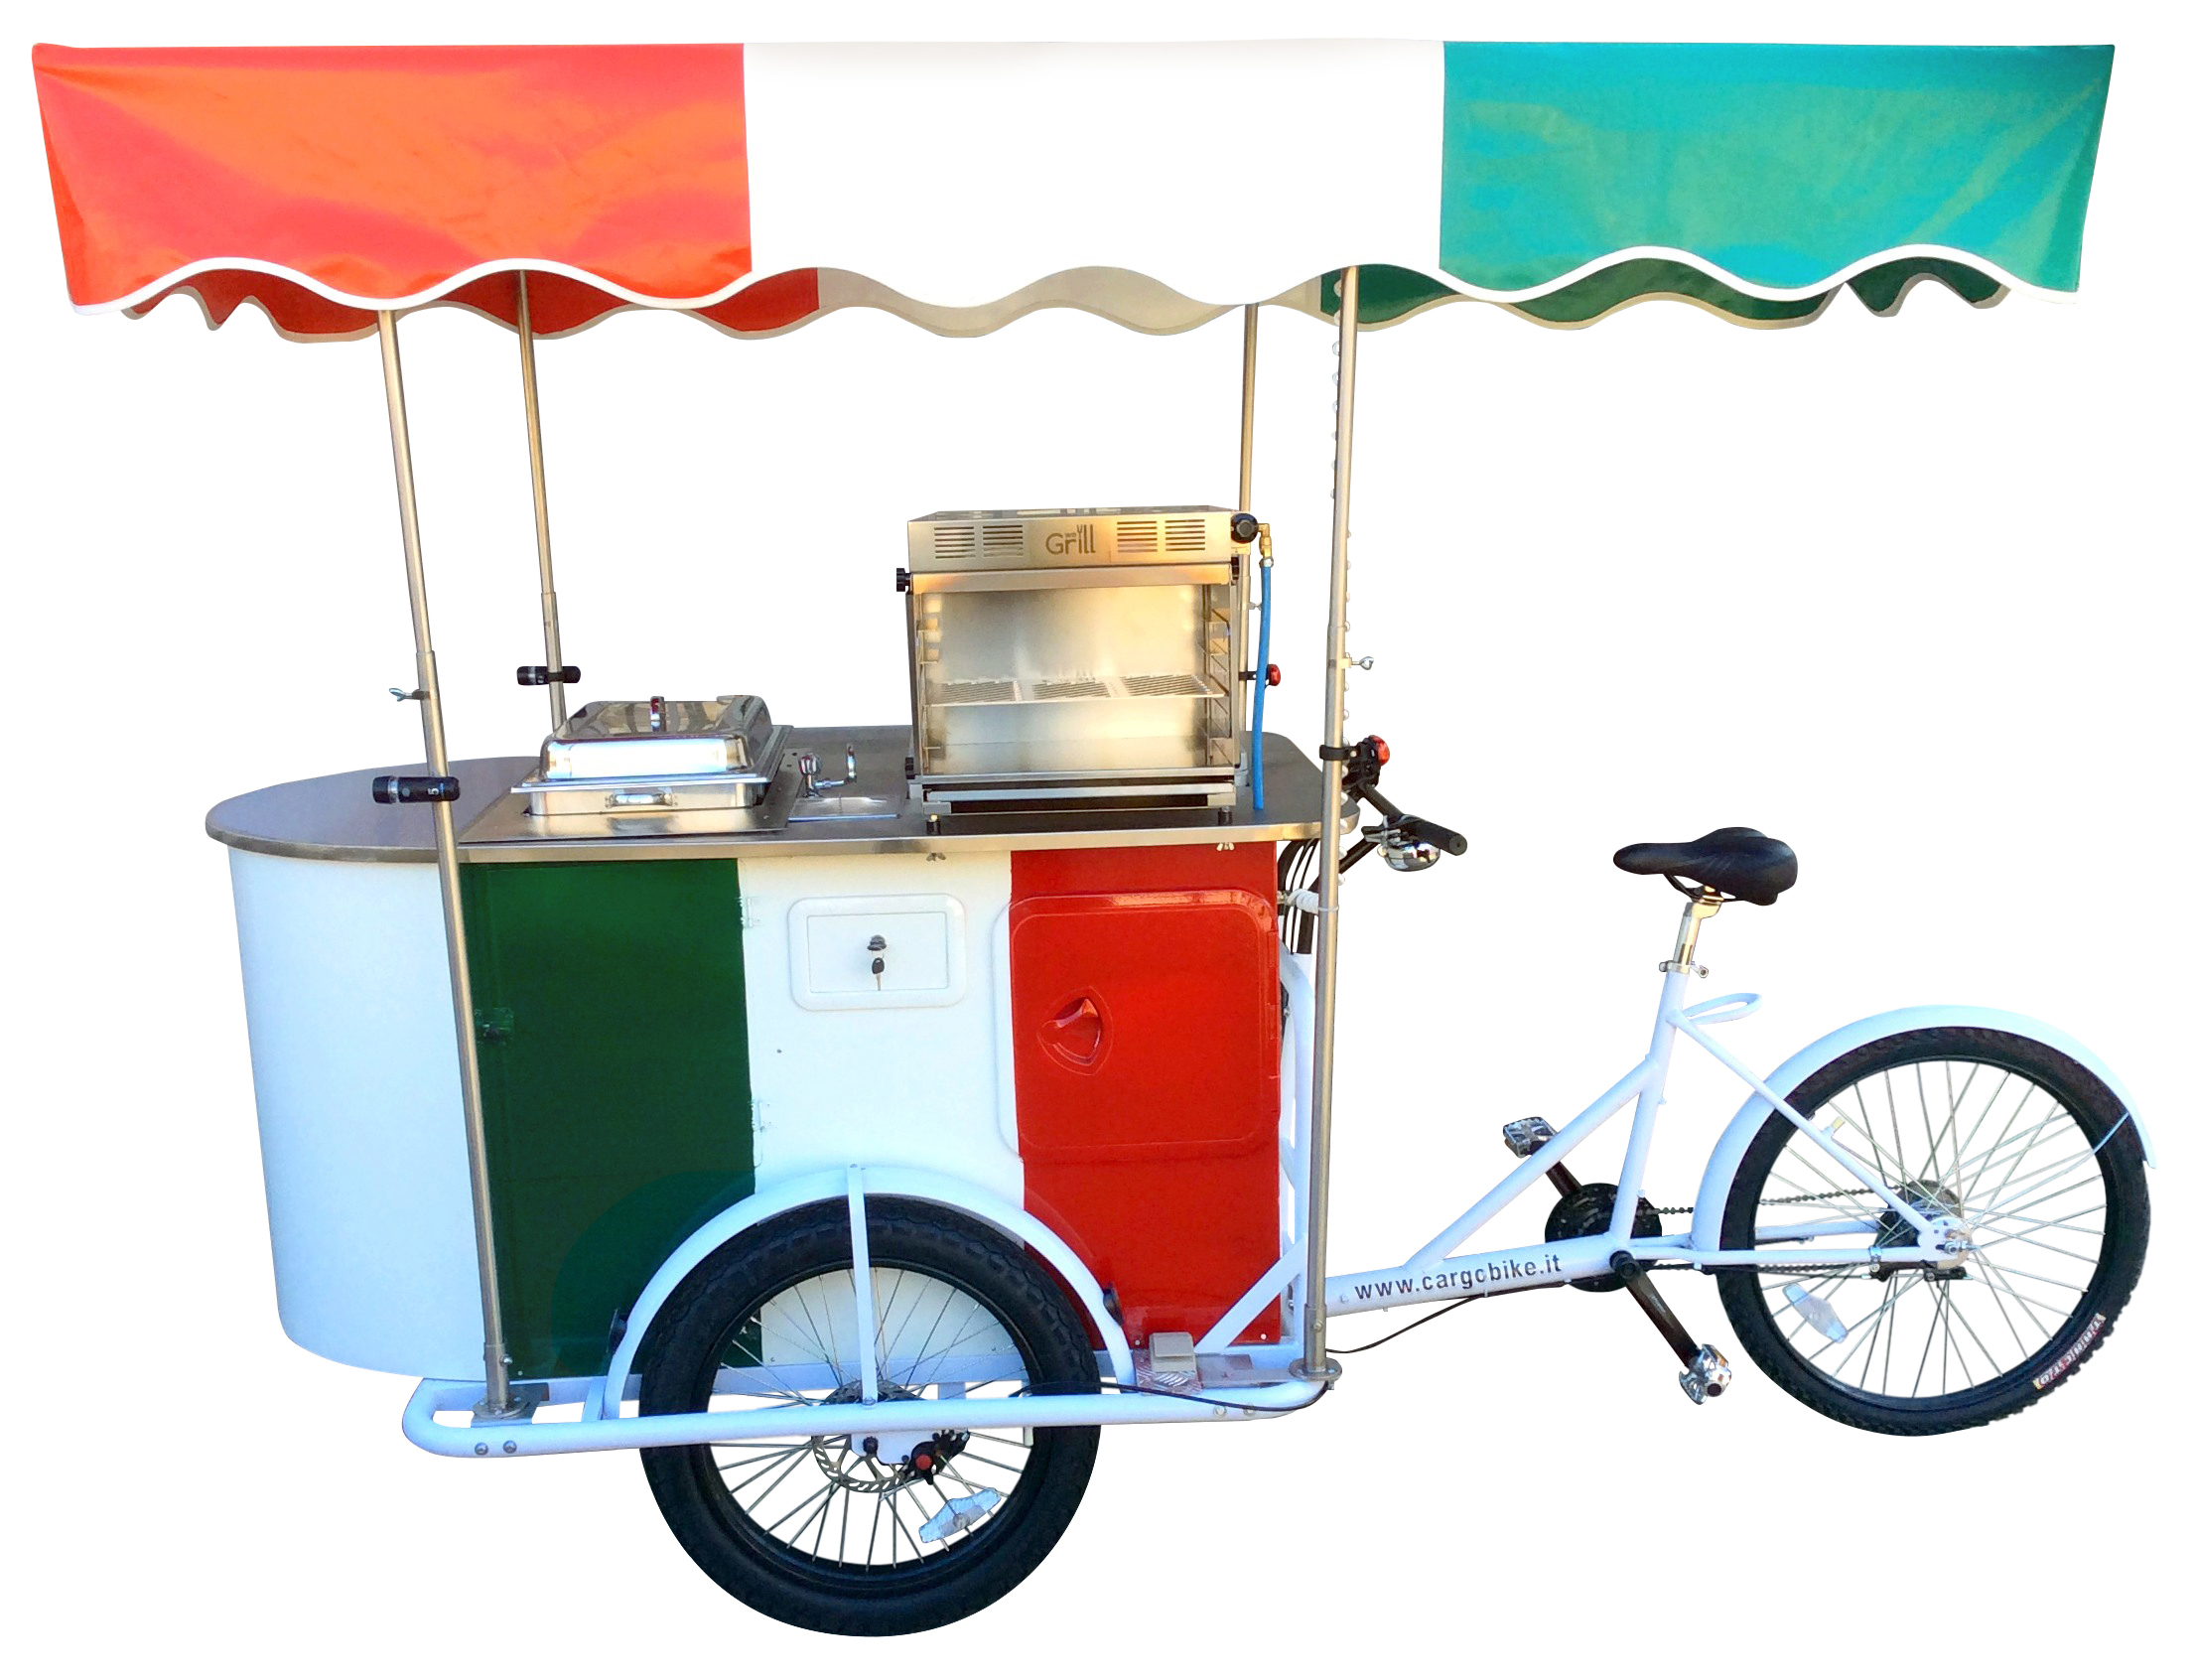 STREET_FOOD_GRILL_REVIVAL_TRICICLO_CARGO_BIKE_1